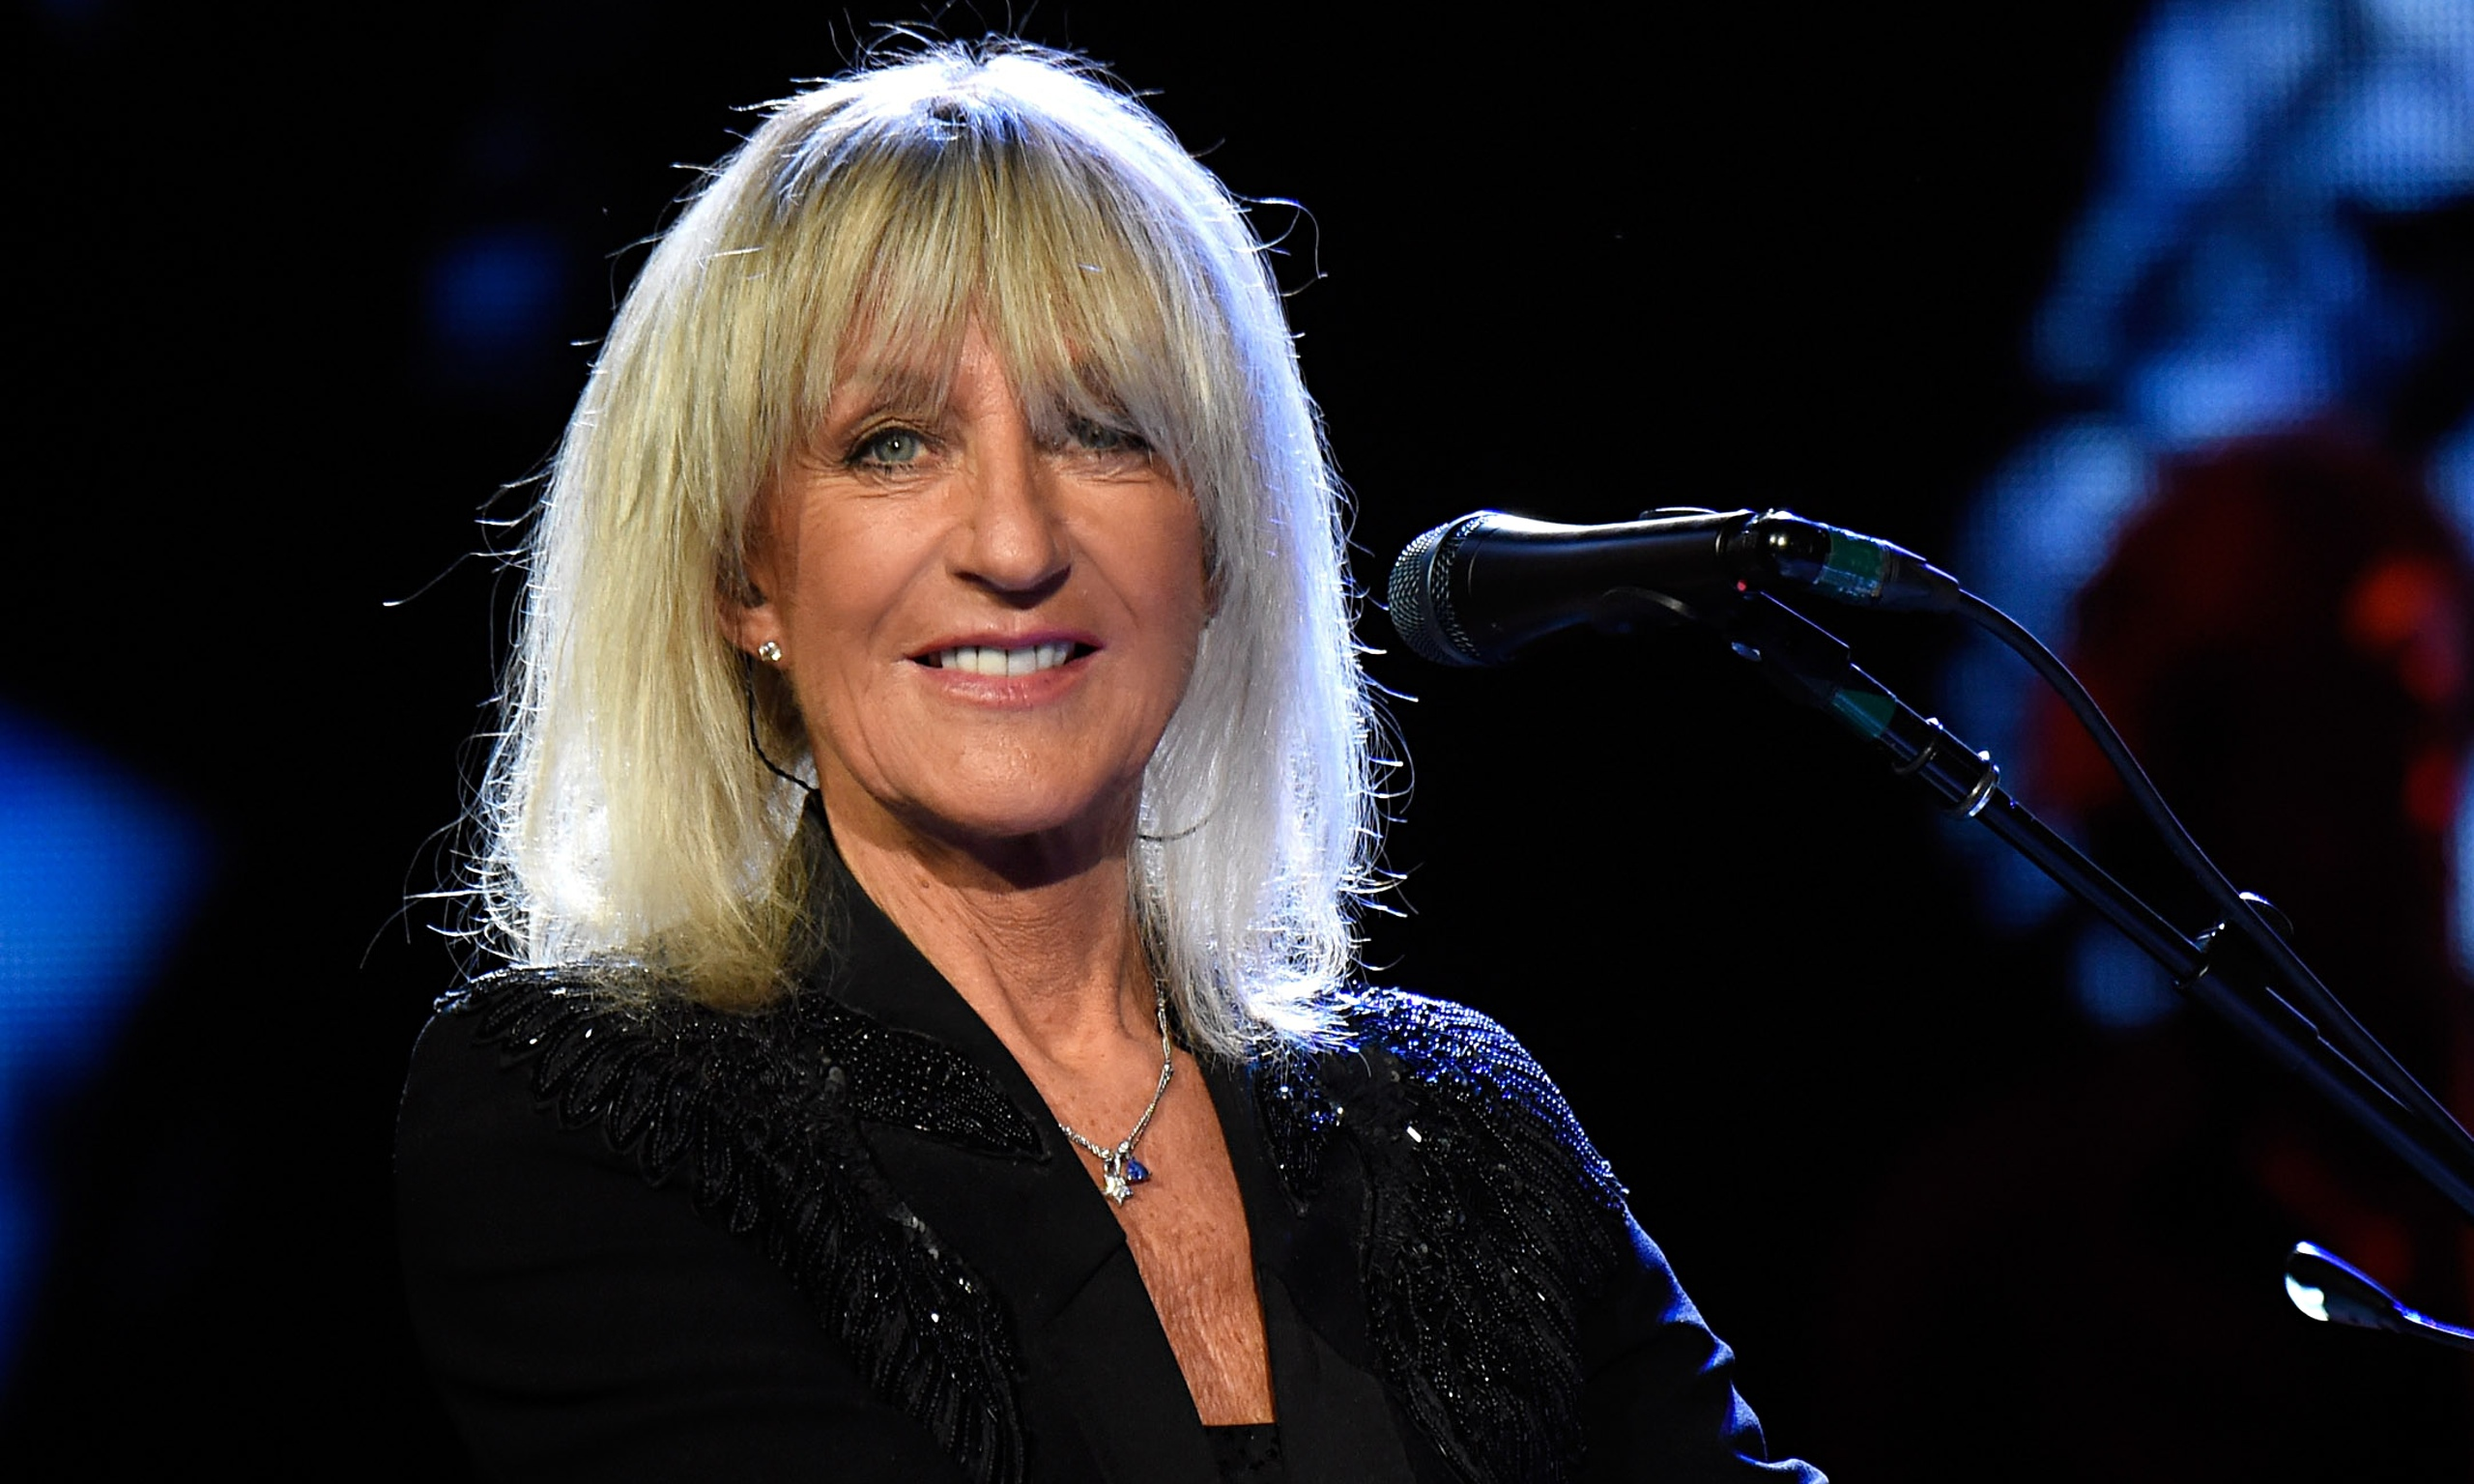 how tall is christine mcvie